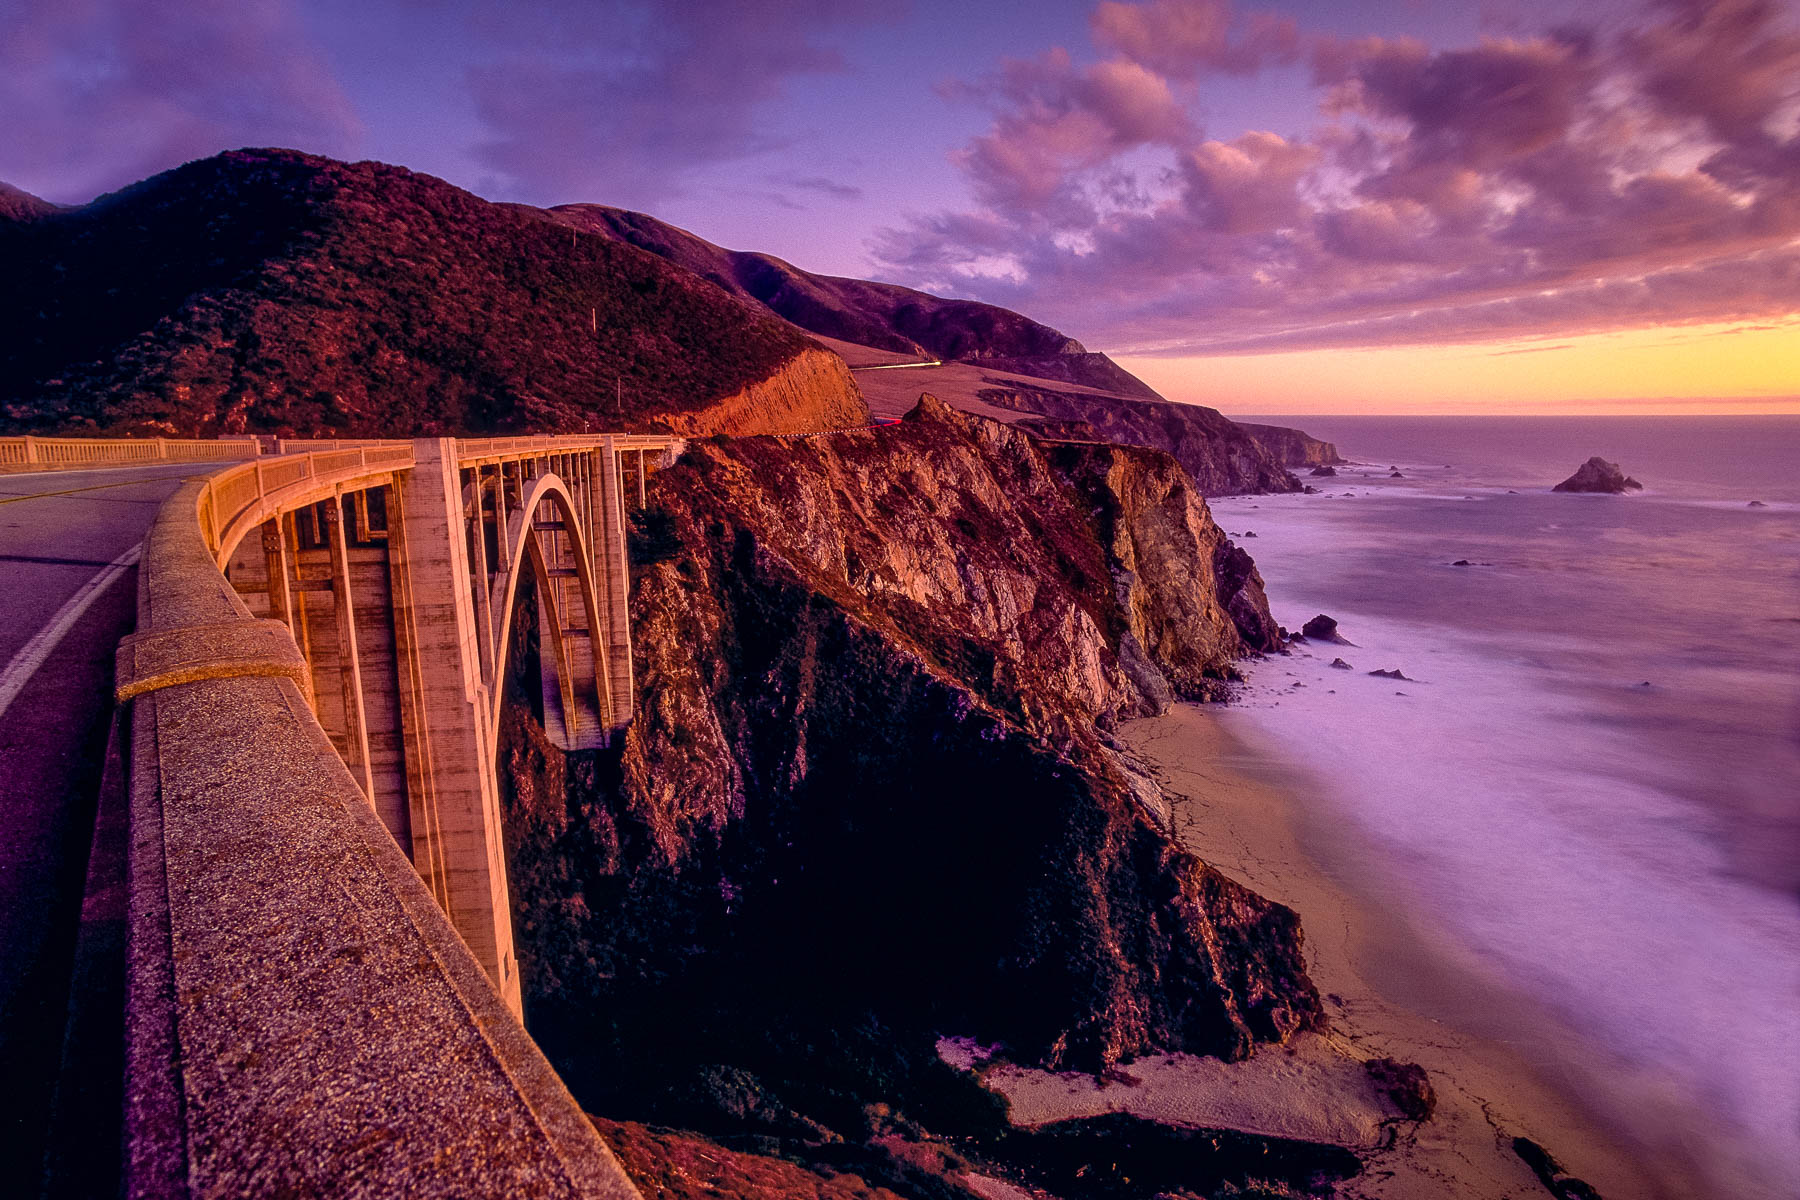 JohnMacLean_19920923_BixbyBridge_PF